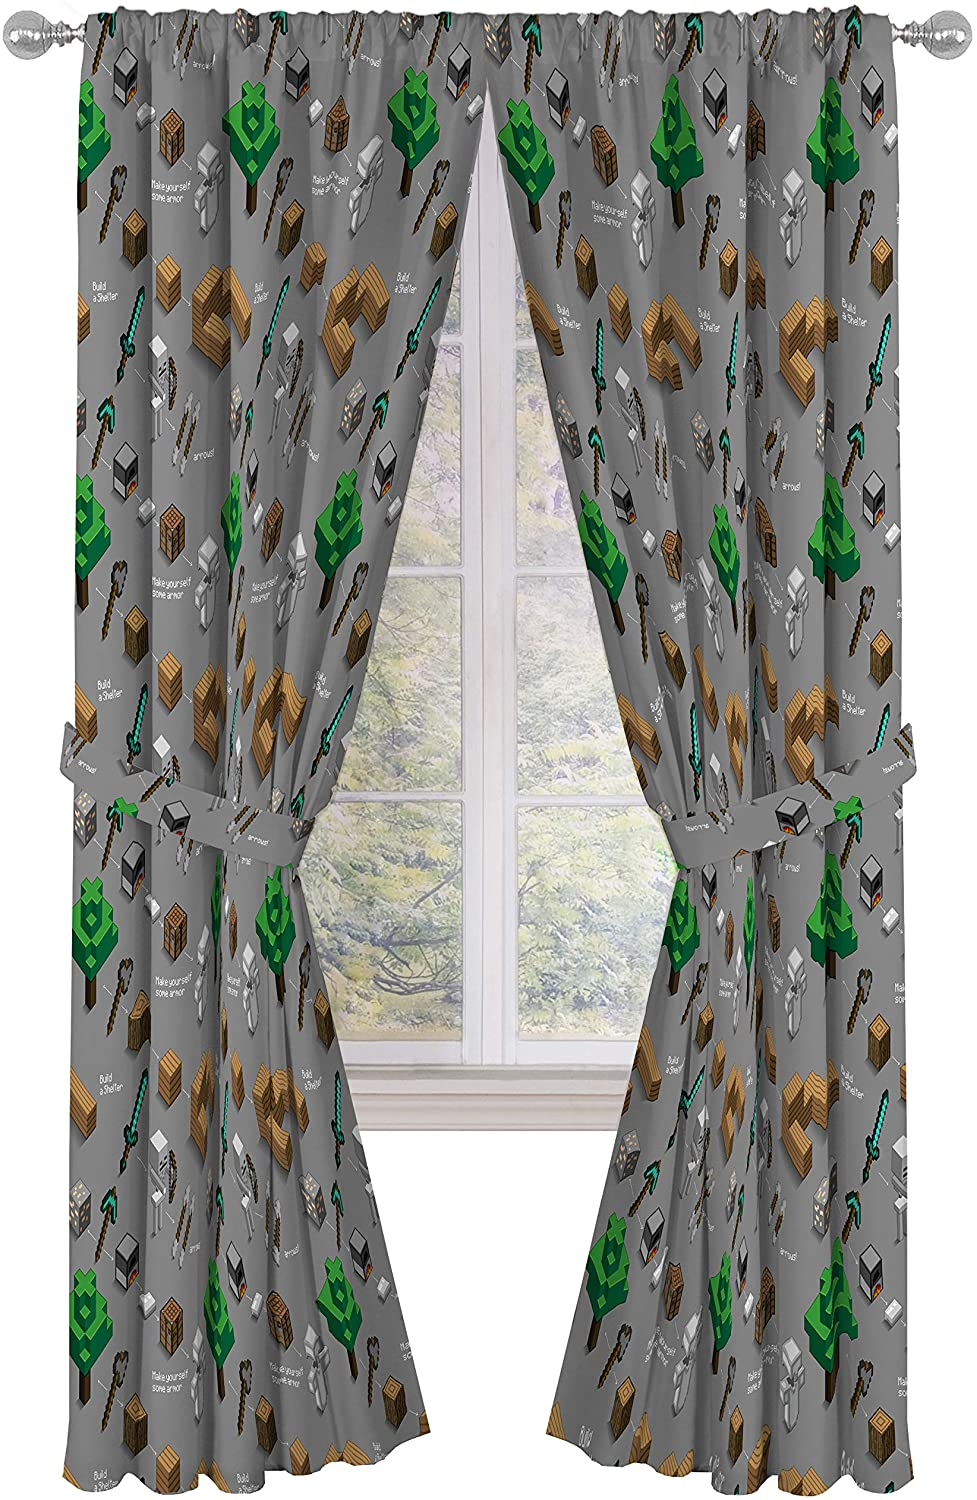 Amazon Com Jay Franco Minecraft Survive Dark 84 Inch Drapes 4 Piece Set Beautiful Room Decor Easy Set Up Window Curtains Include 2 Panels 2 Tiebacks Official Minecraft Product Home Kitchen